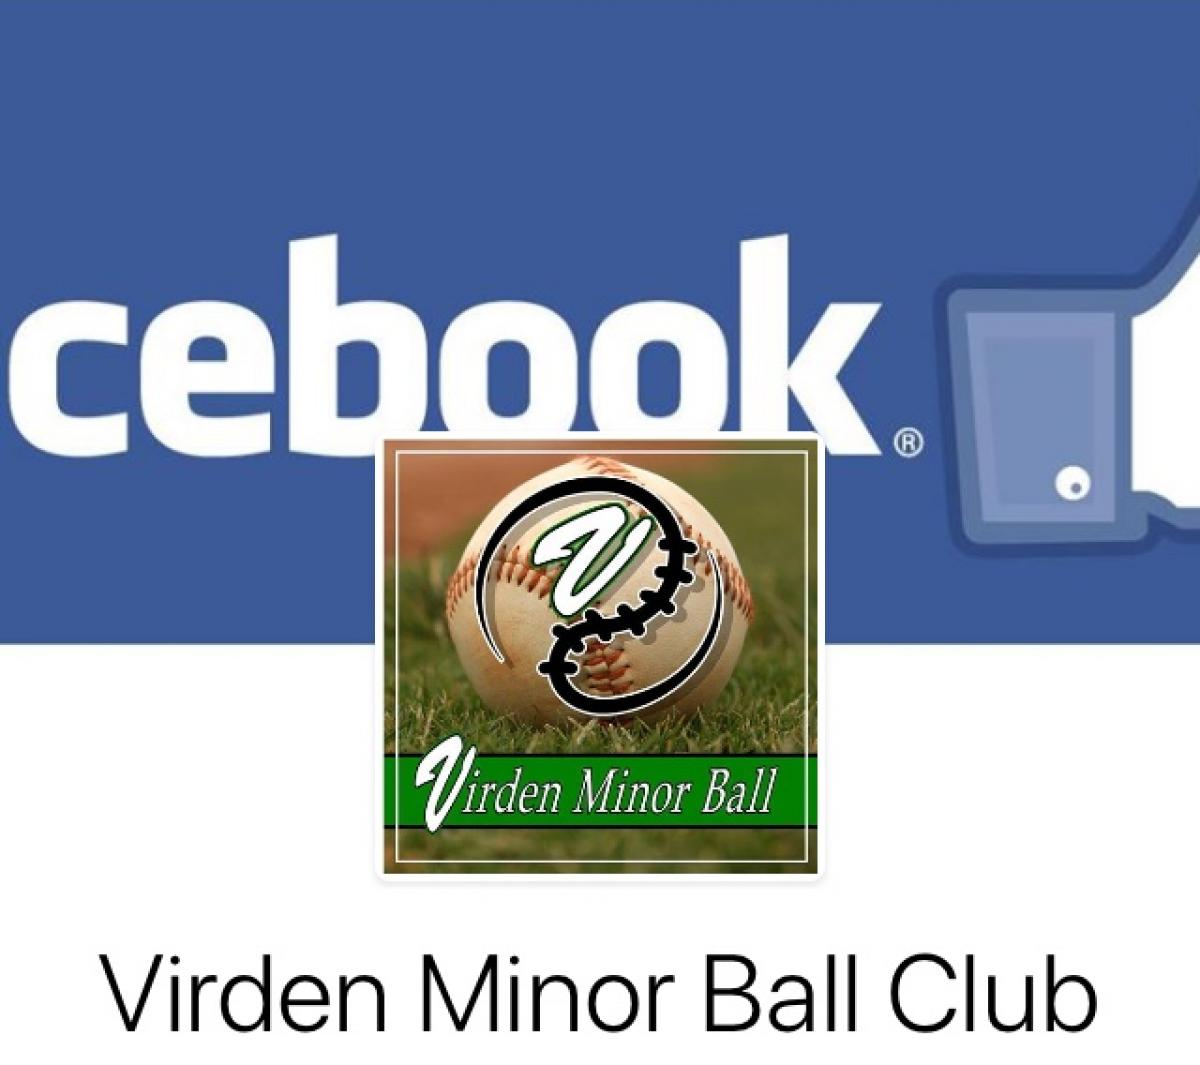 Visit our Virden Minor Ball Club Facebook Page